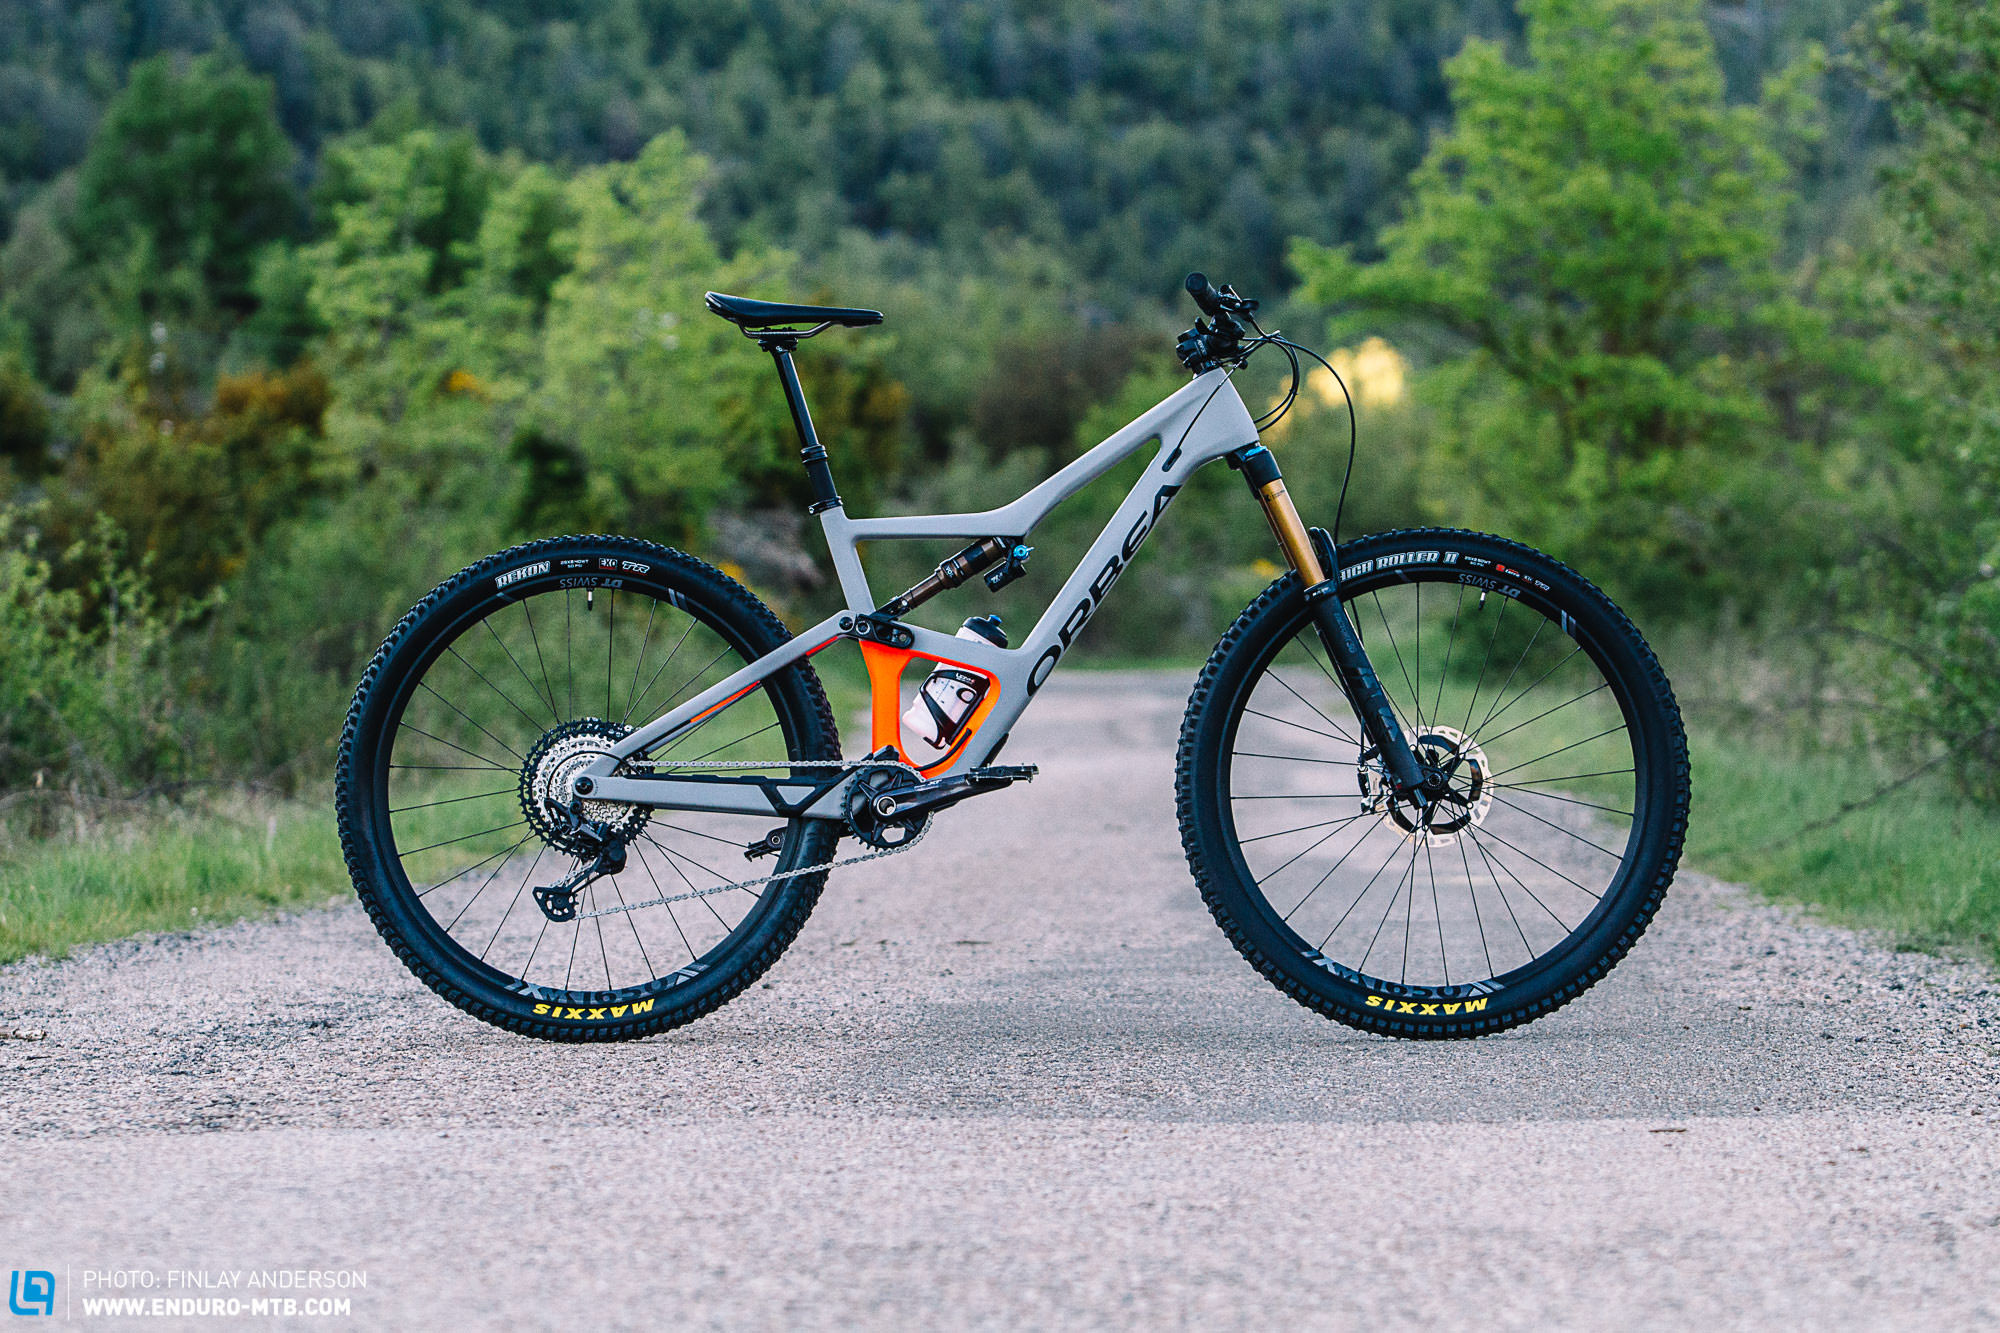 Best Digital Photo Frame 2020 First Ride Review: Orbea Occam 2020 – the Spanish trail bike